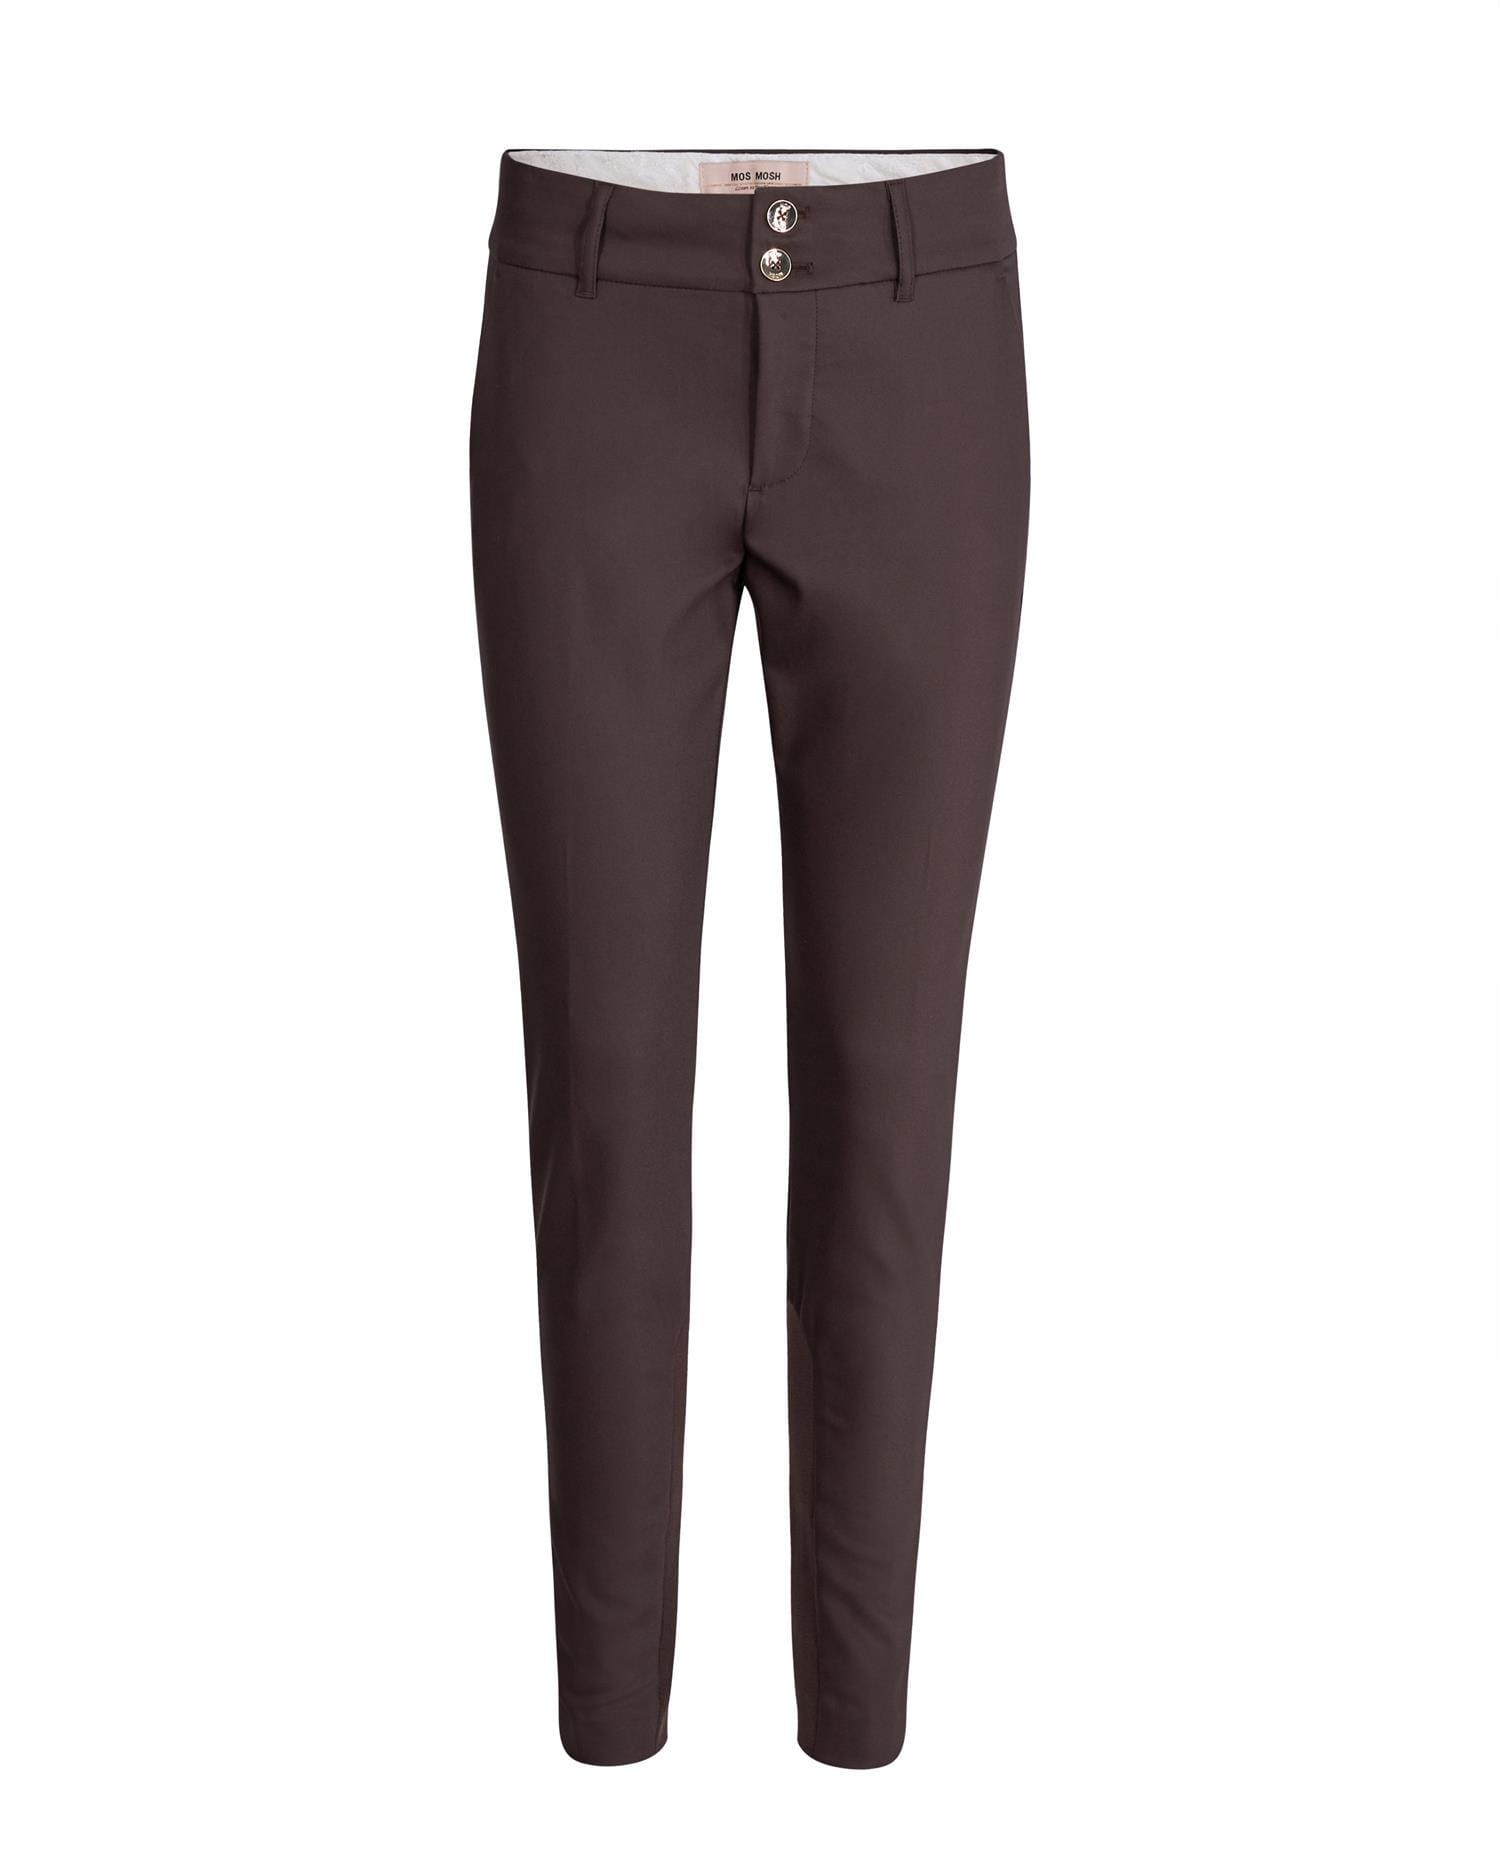 Blake Night Pant Sustainable